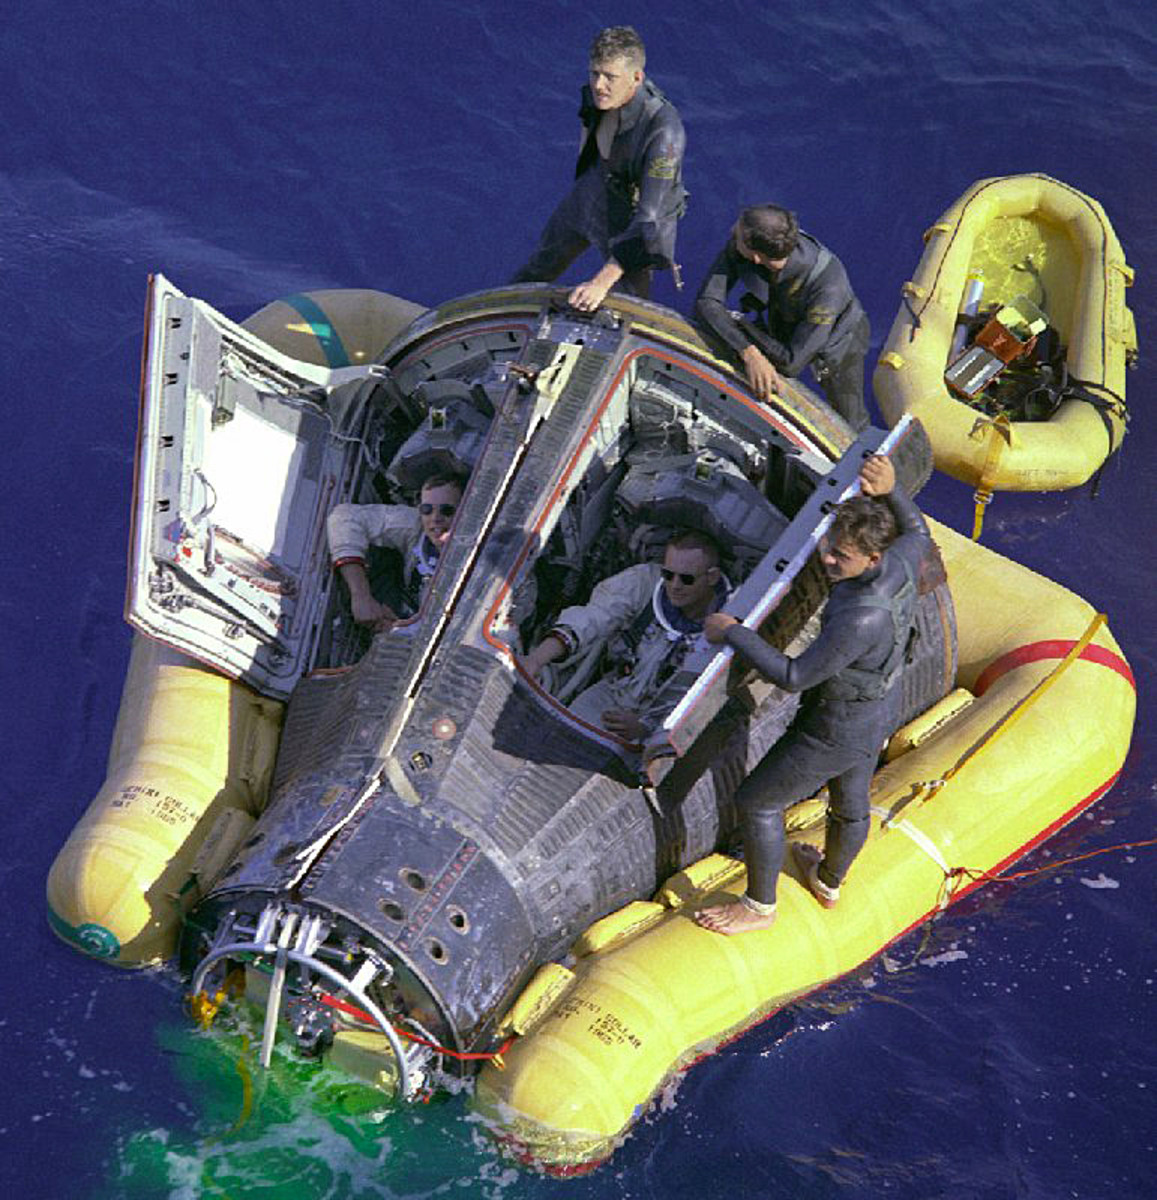 Gemini 8 capsule following splashdown in the western Pacific ocean, approximately 800km east of Okinawa, the result of an emergency landing. Aboard the capsule are United States astronauts David Scott (left) and Neil Armstrong (right).